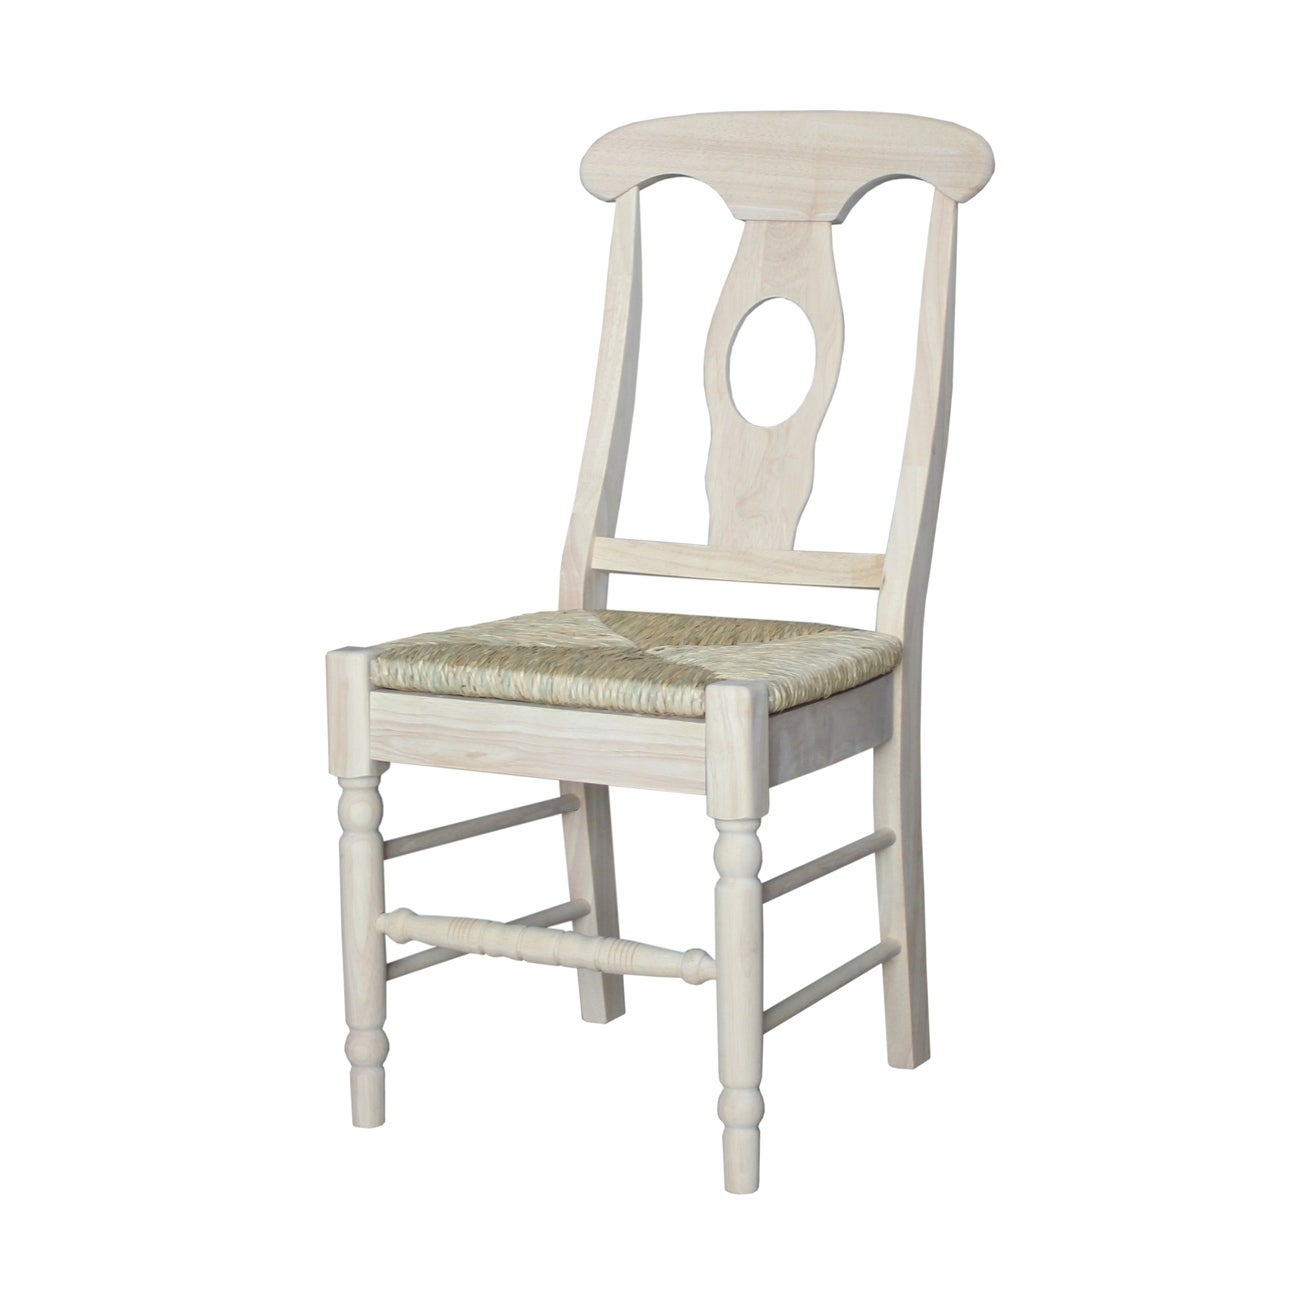 Details About International Concepts Unfinished Solid Parawood Empire  Dining Chair (Set Of 2)